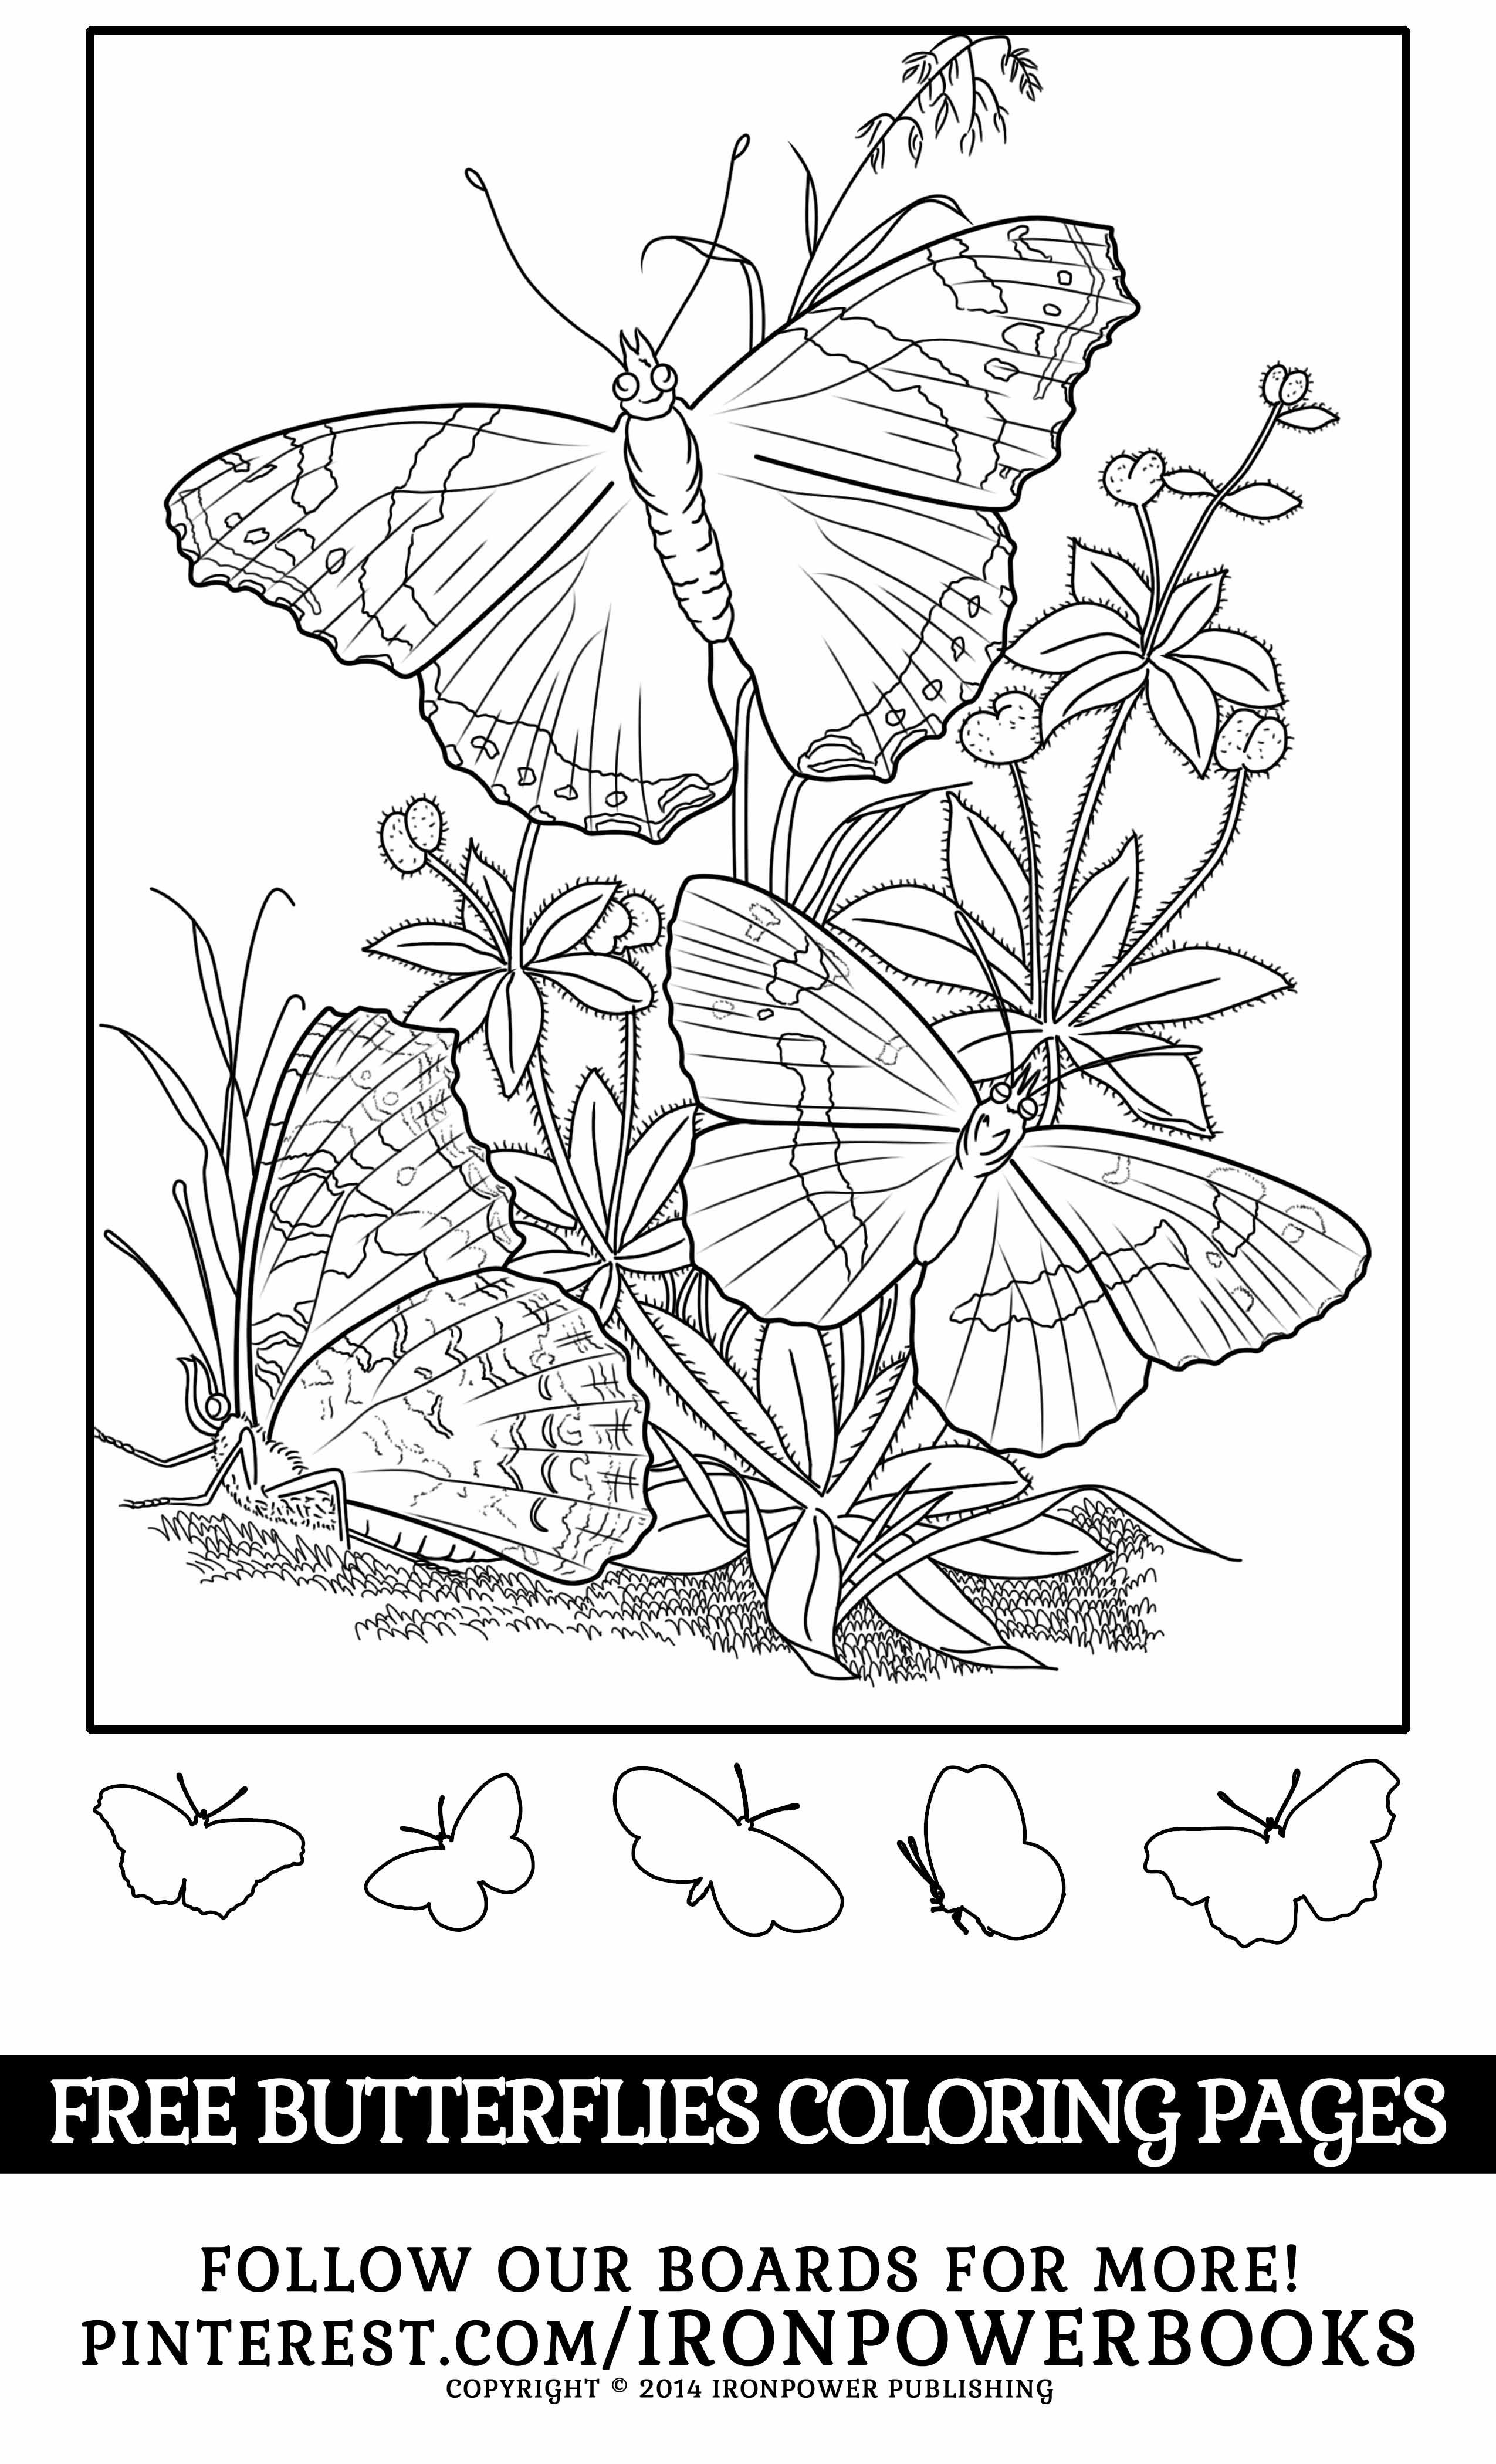 Free Butterflies Coloring Page From Ironpowerbooks Please Use Freely For Personal Non Commerc Butterfly Coloring Page Coloring Pages Blank Coloring Pages [ 4200 x 2550 Pixel ]